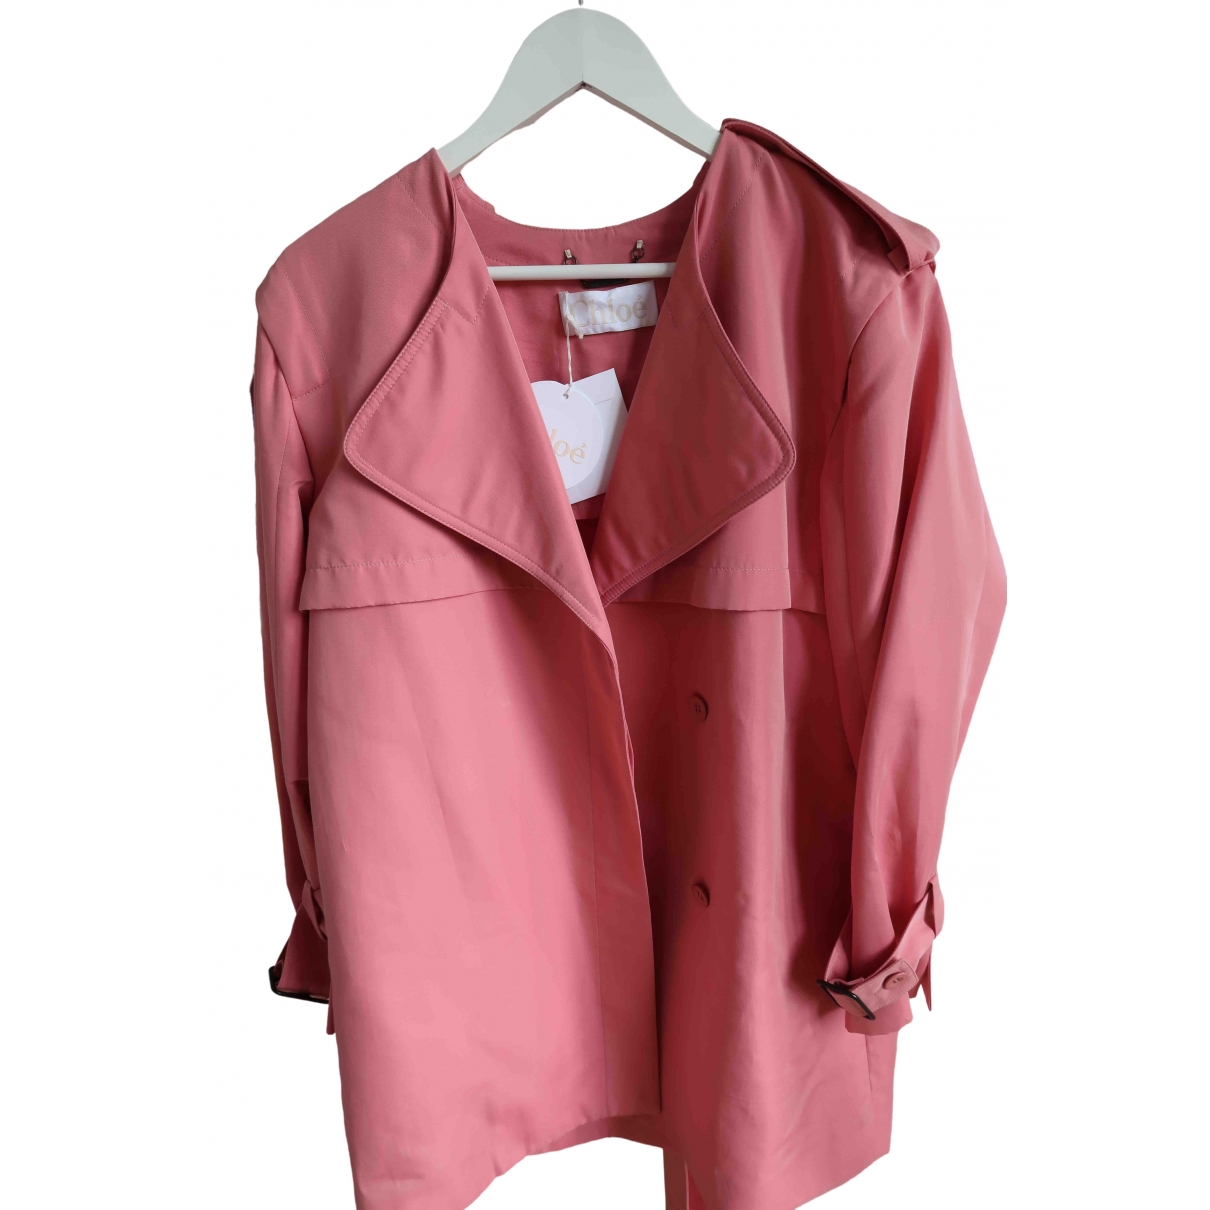 Chloé \N Pink Cotton jacket for Women 42 FR